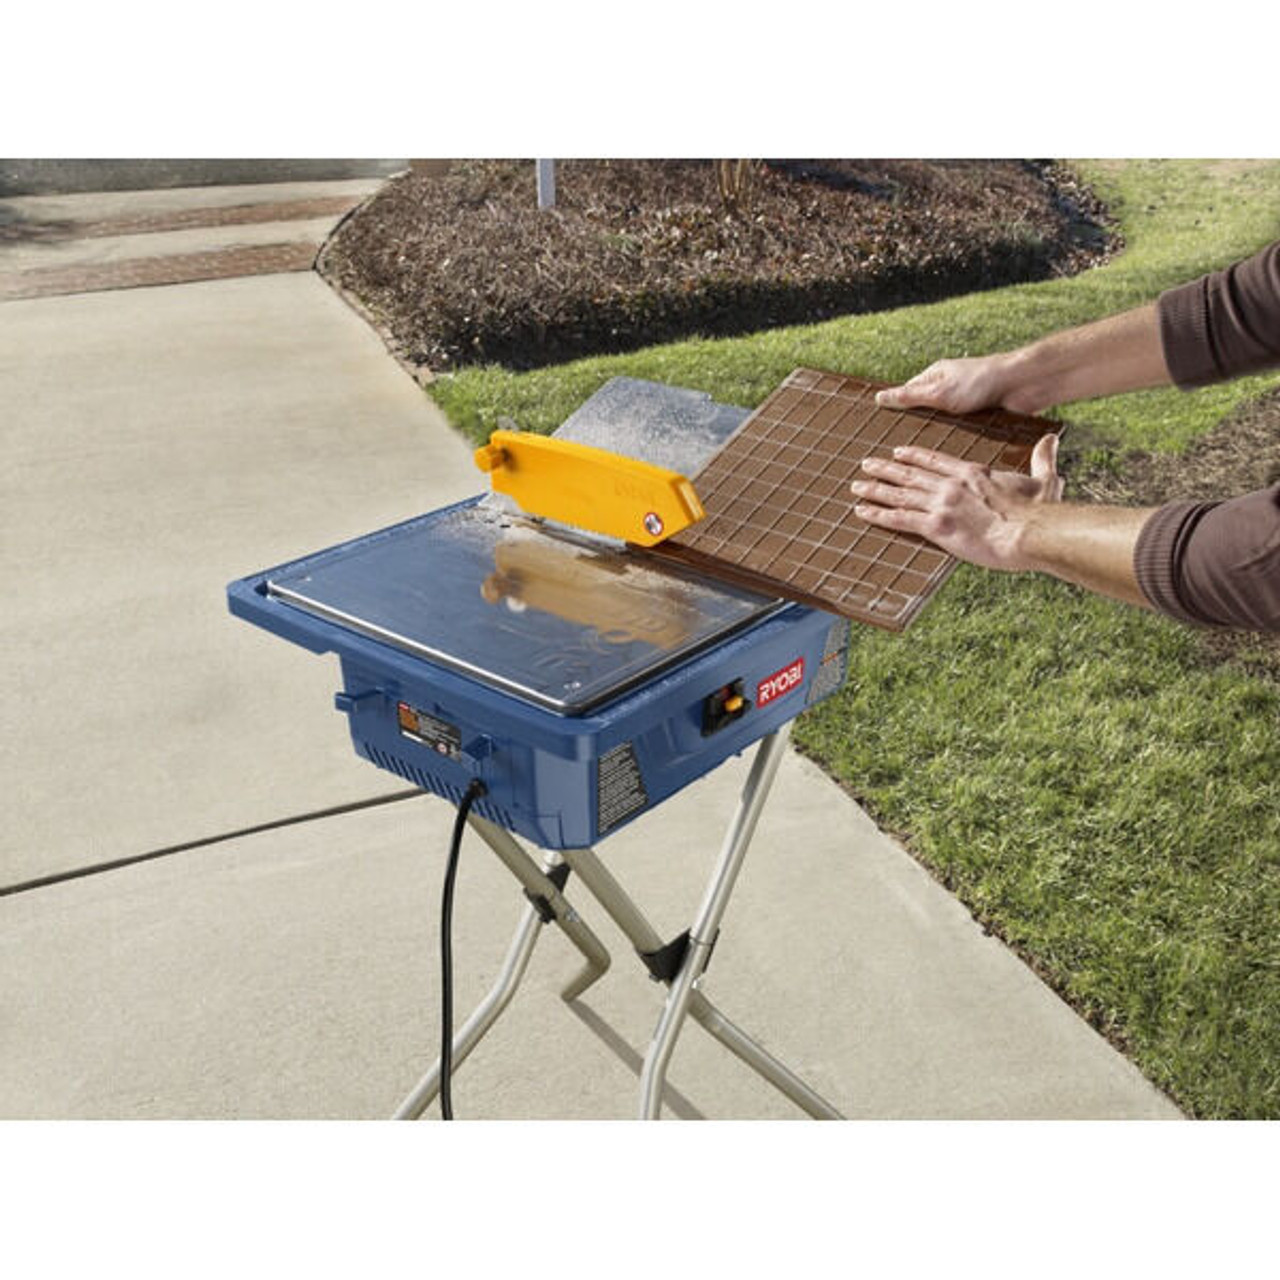 tile cutter ryobi 7 ws720sbf wet tile w stand